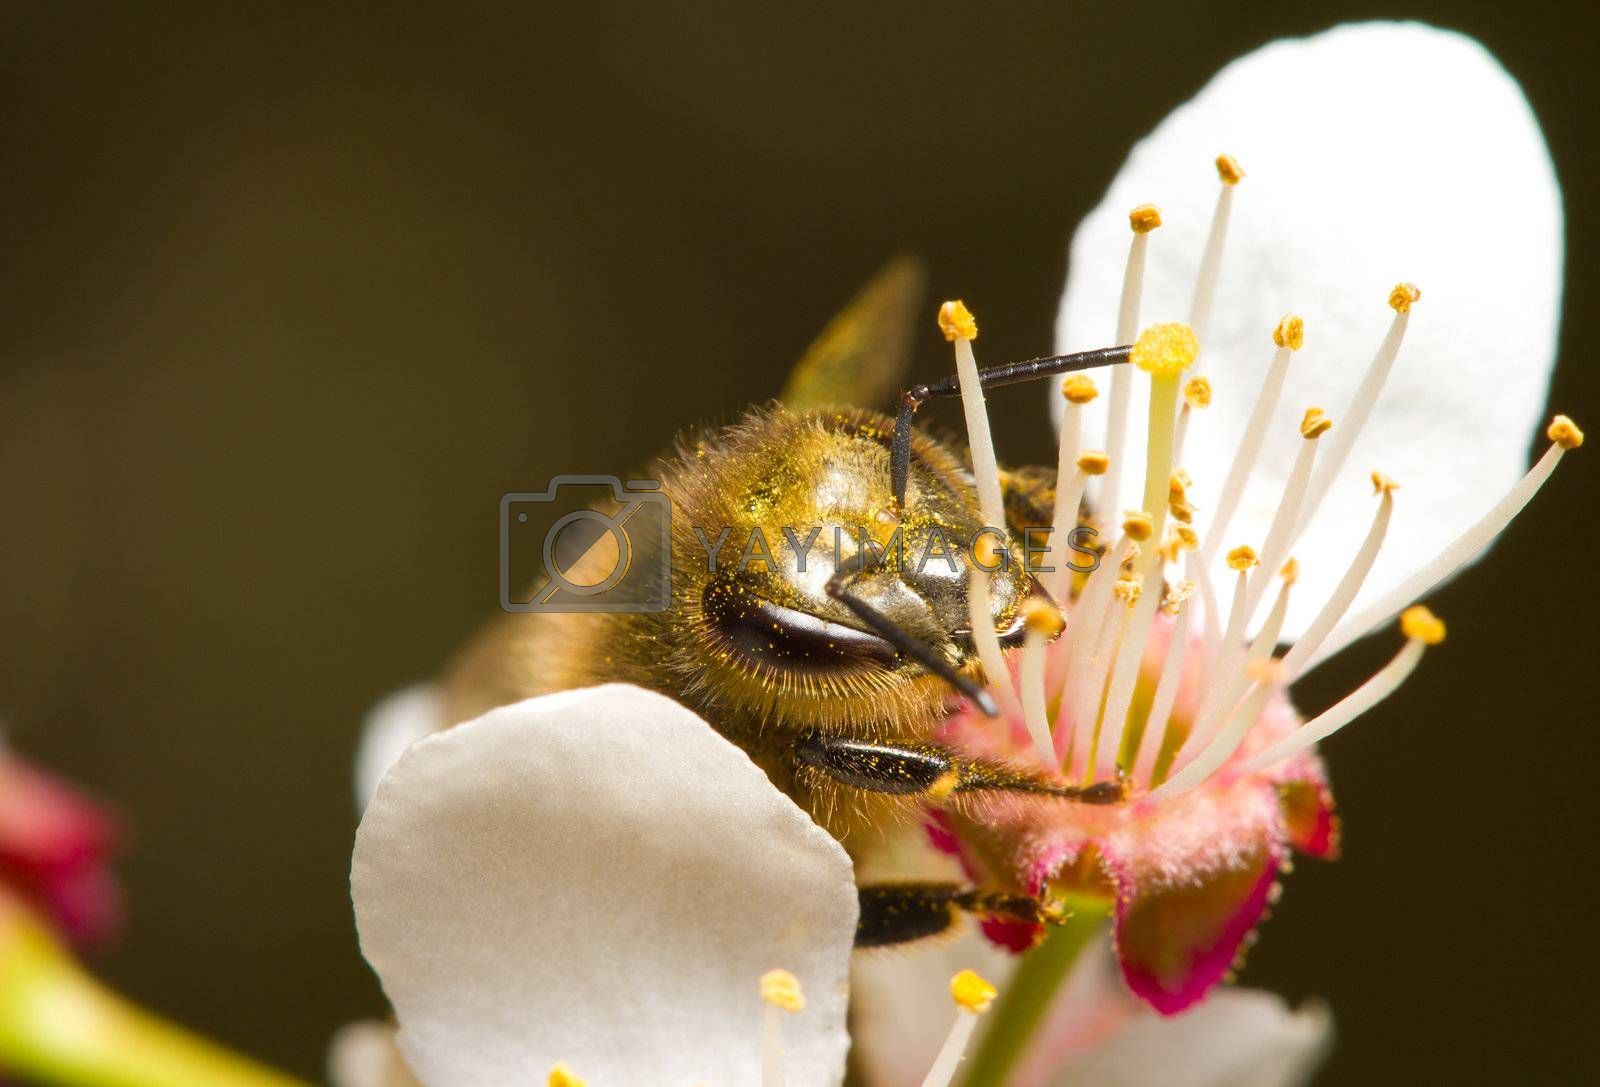 honeybee pollinating flowers, macro shot